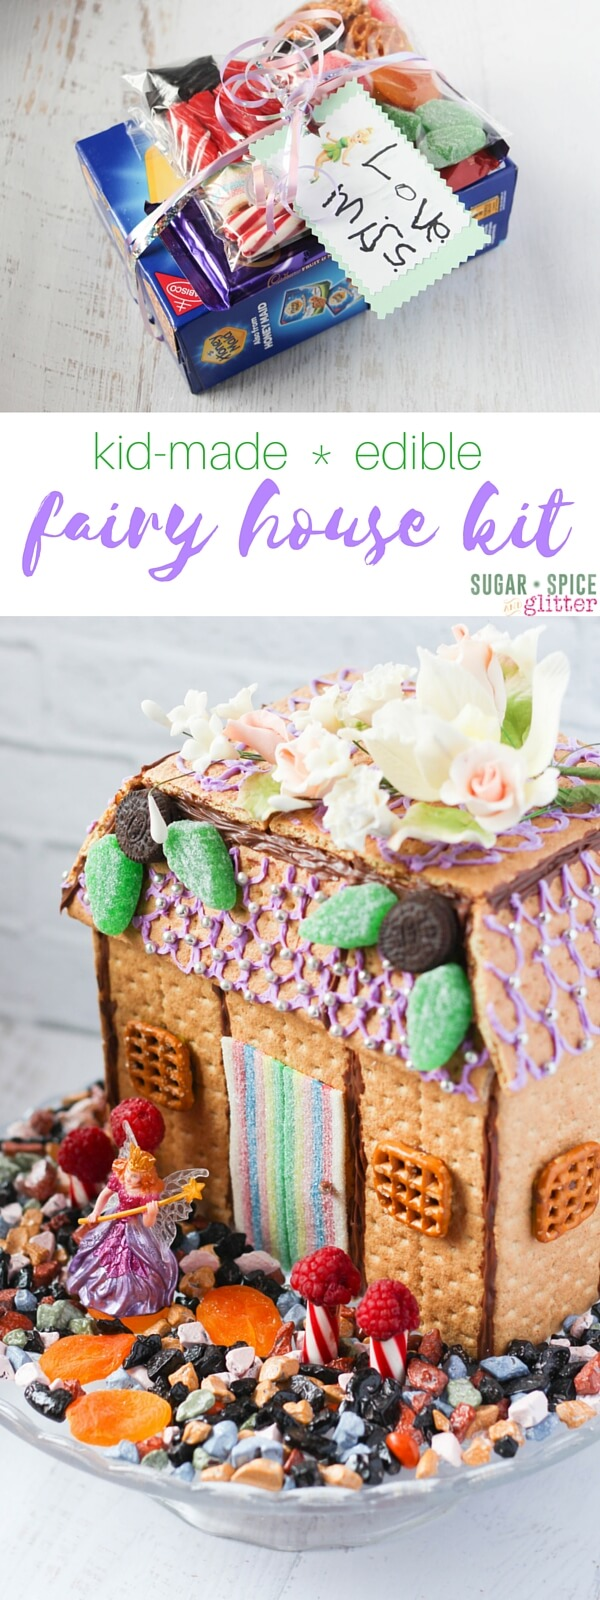 How to make an edible fairy house tutorial, complete with a free printable gift tag for a DIY Fairy House Kit. This would be a beautiful centrepiece at a Fairy party and is a great STEAM activity for kids, allowing them to engineer a house with all edible materials